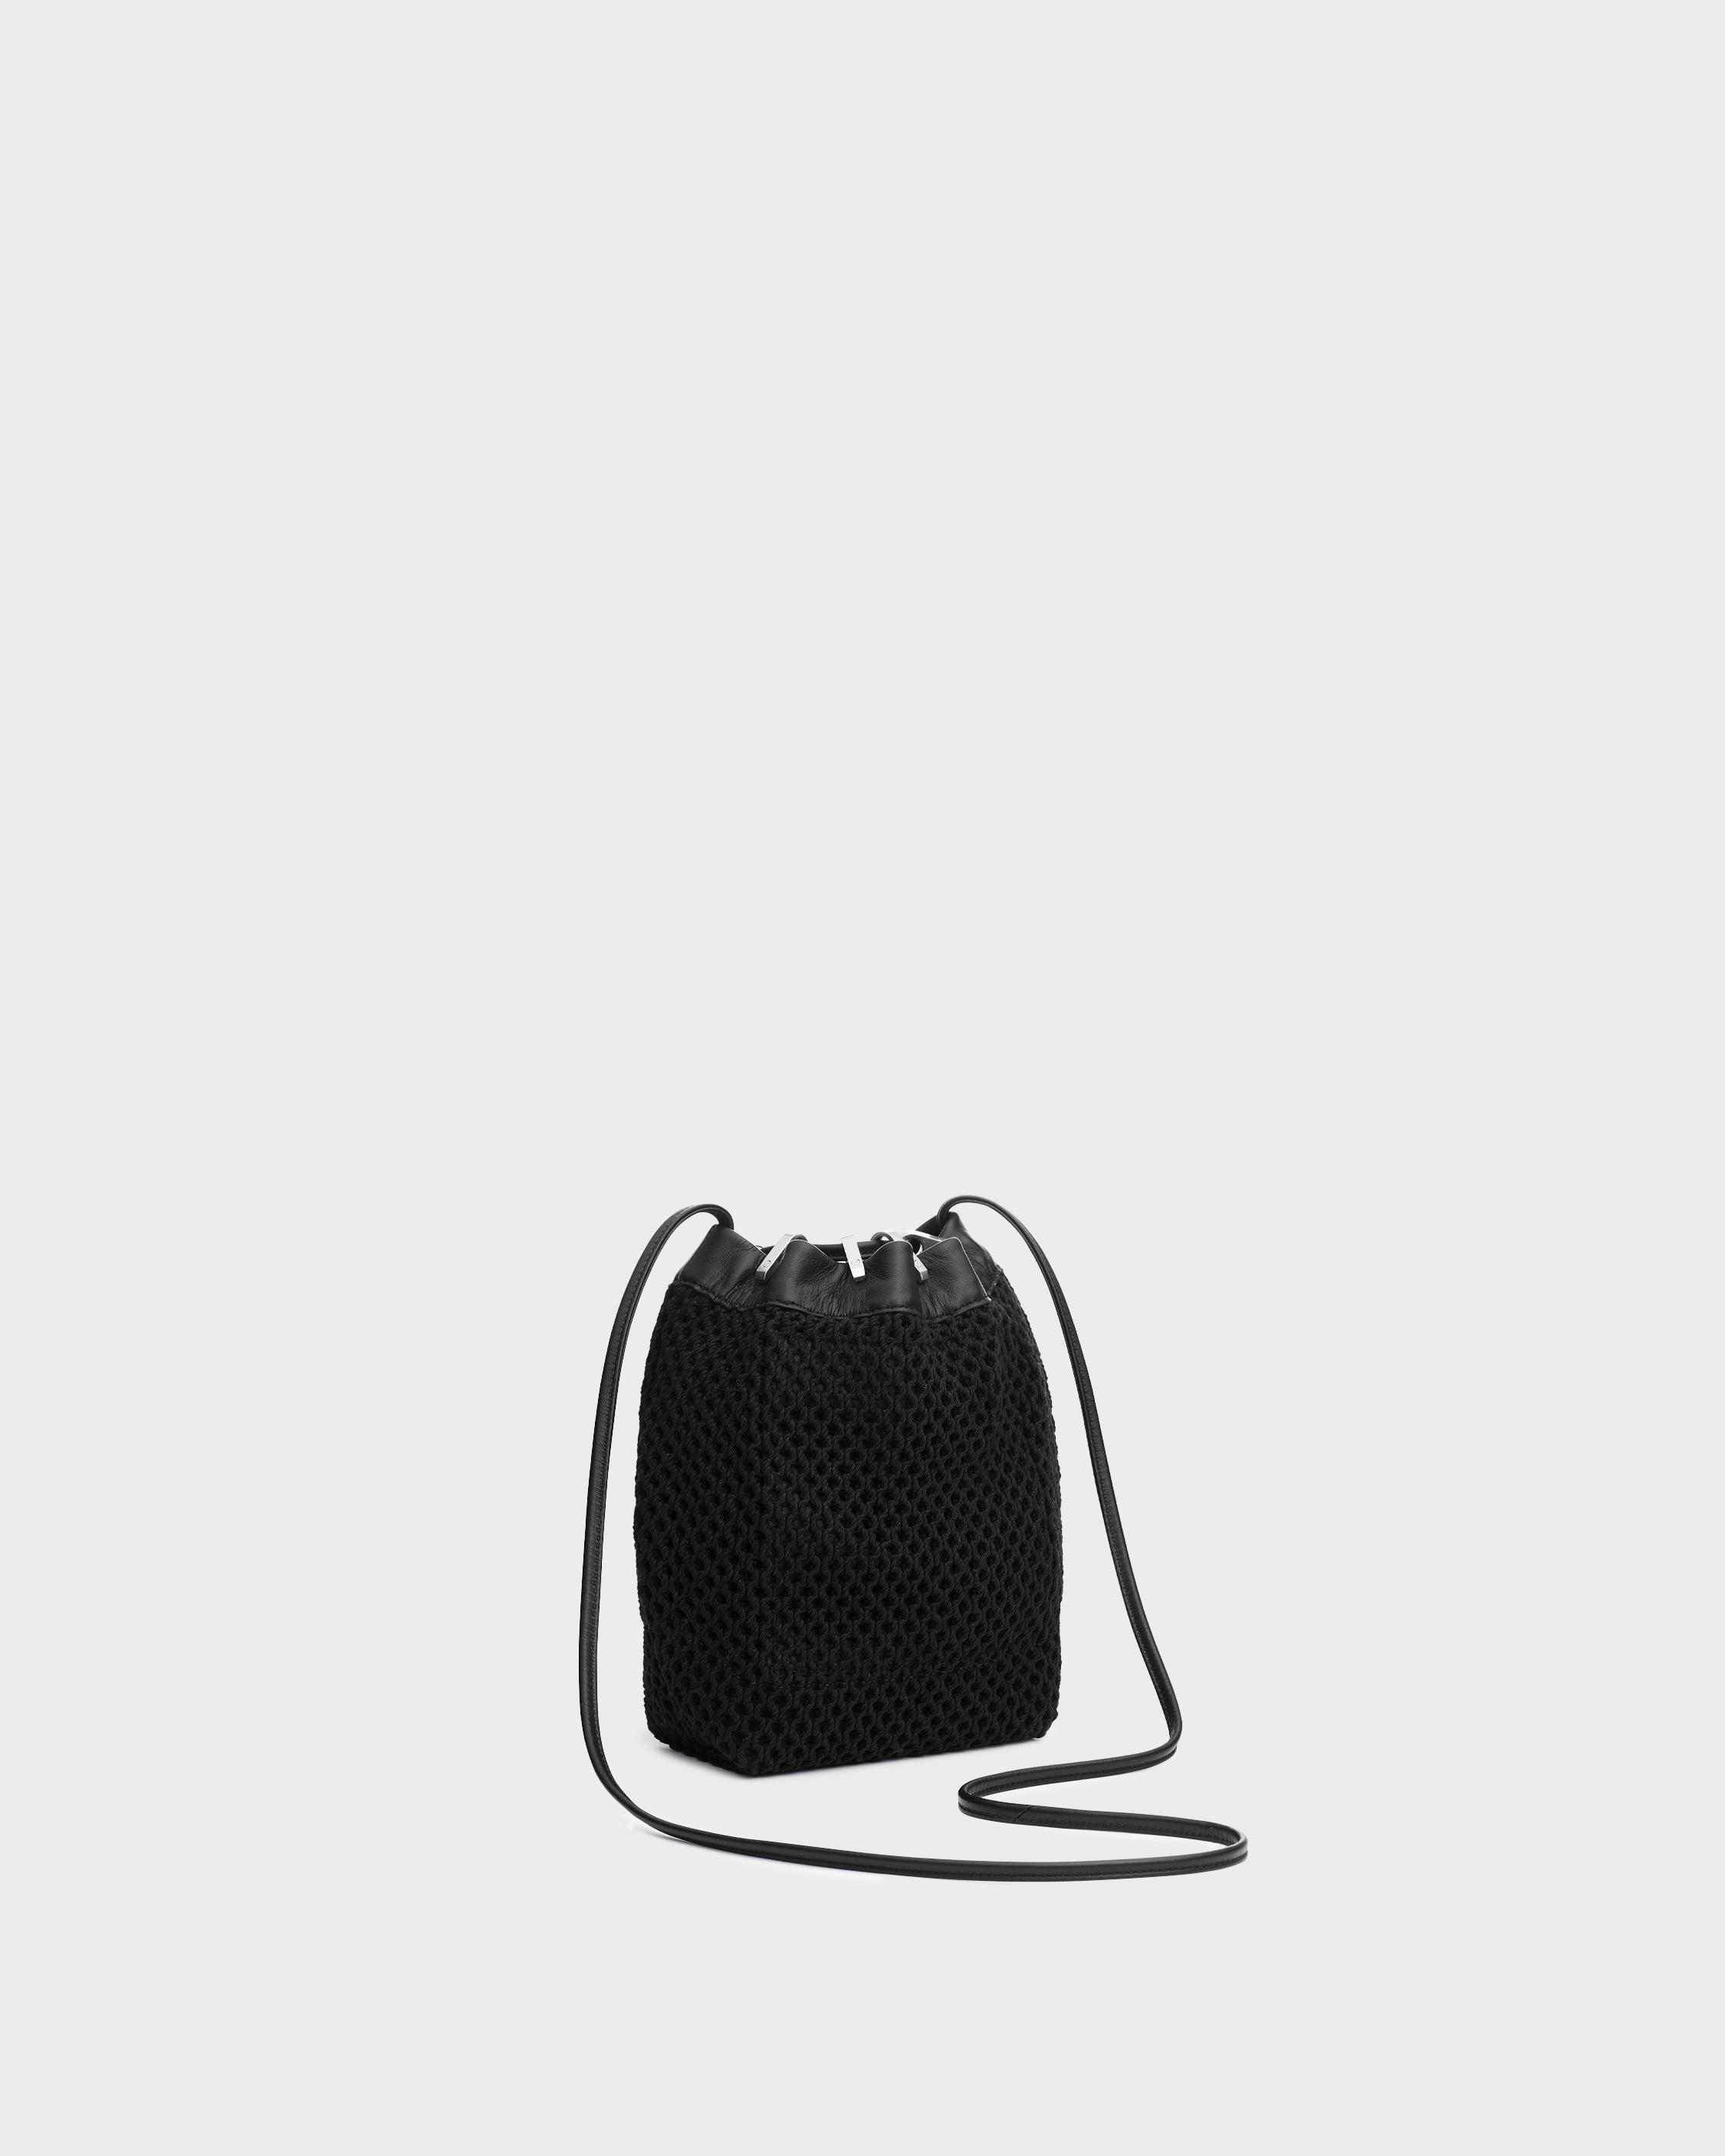 Summer dayton drawstring bag - leather and recycled materials 1